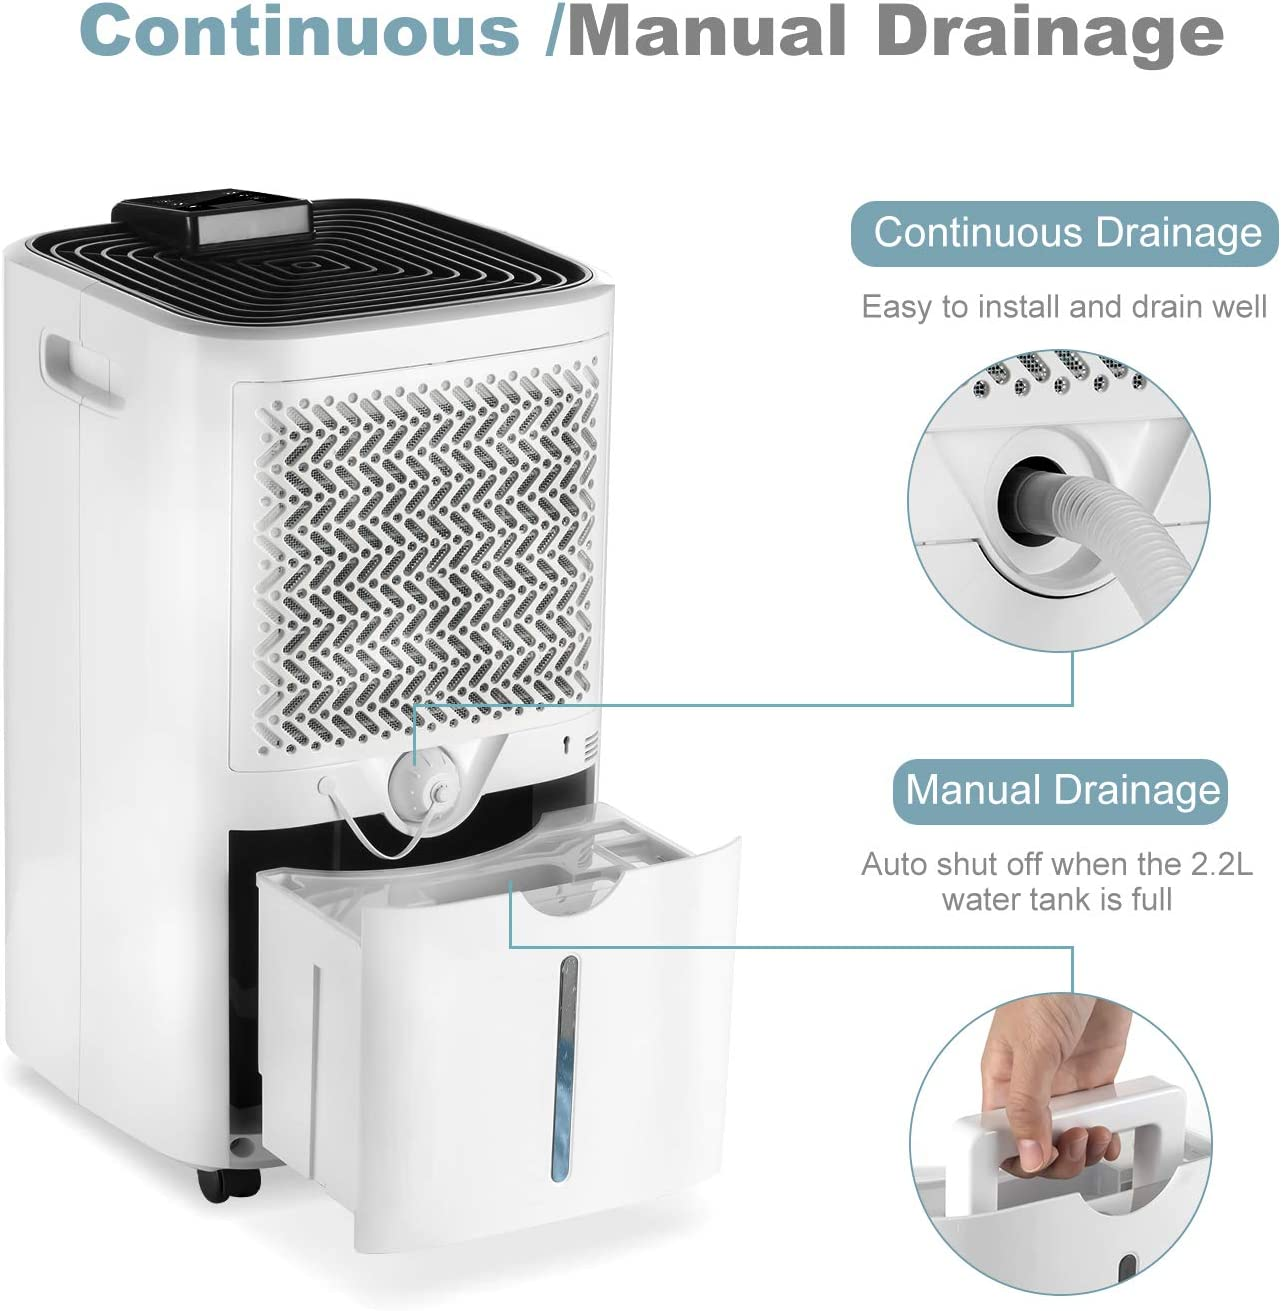 24 Hour Timer Continuous Drainage Digital Humidity Display Dry Clothes Mode HOGARLABS 12L//Day Intelligent Control Dehumidifier with Auto-Off Ideal for Home Damp and Condensation